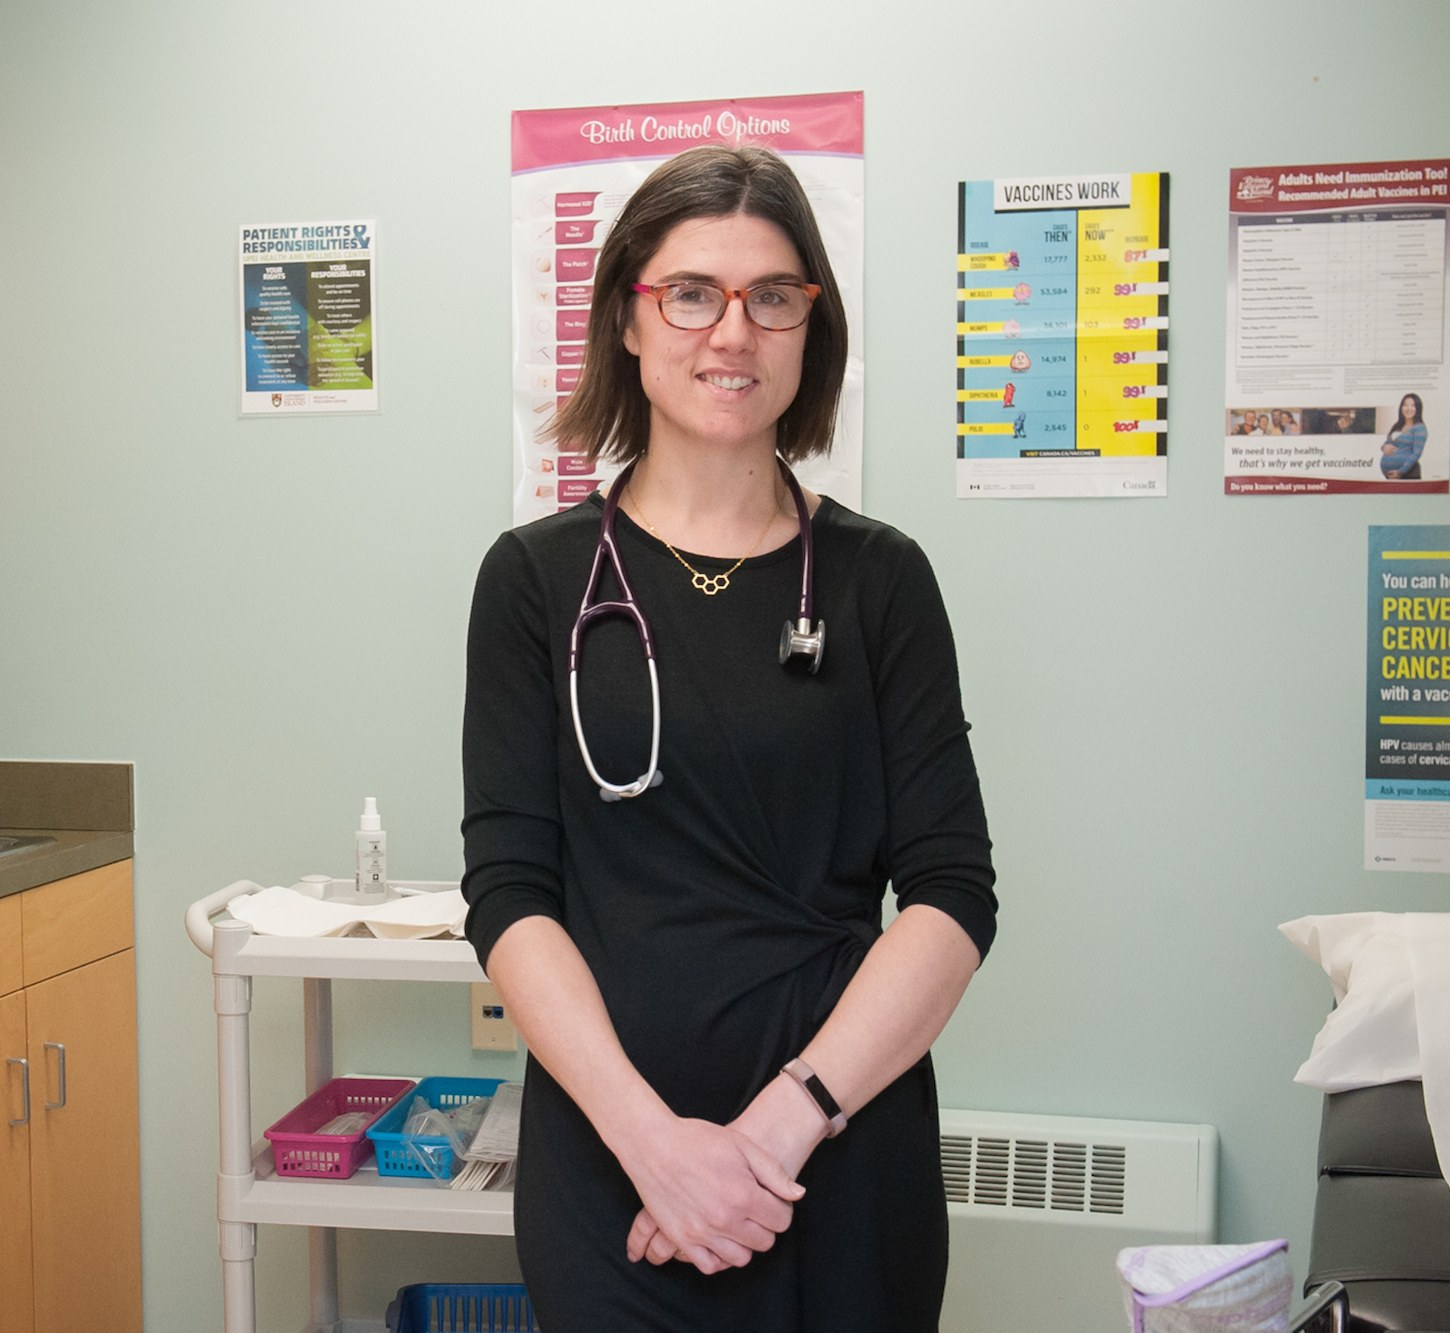 dr. ashby and the UPEI Health Clinic